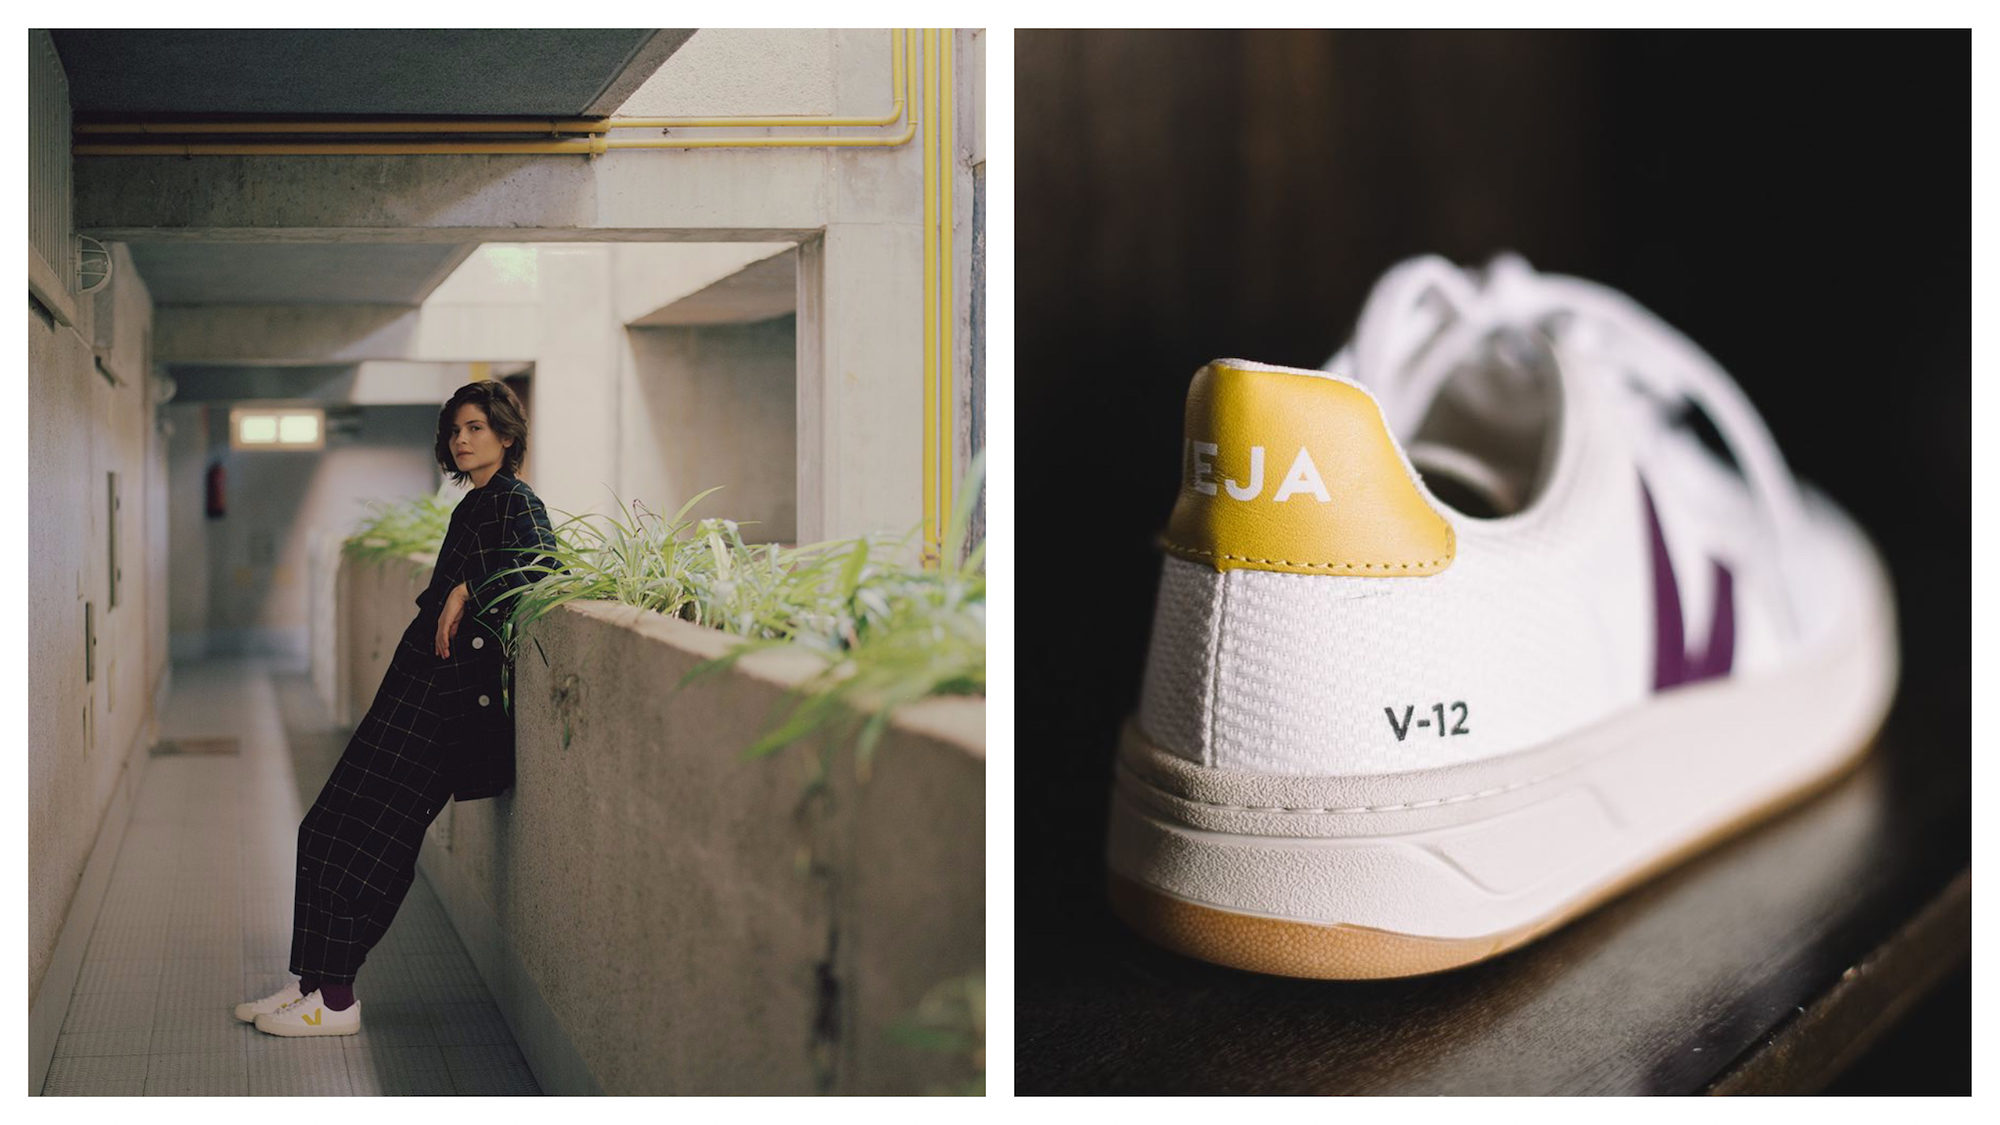 Get the right trainers to look like a Parisian, like these sustainably made Veja trainers worn by a model wearing cropped black trousers and a long blazer, as she leans against a concrete wall topped with plants (left). A pair of Veja trainers close-up (right).